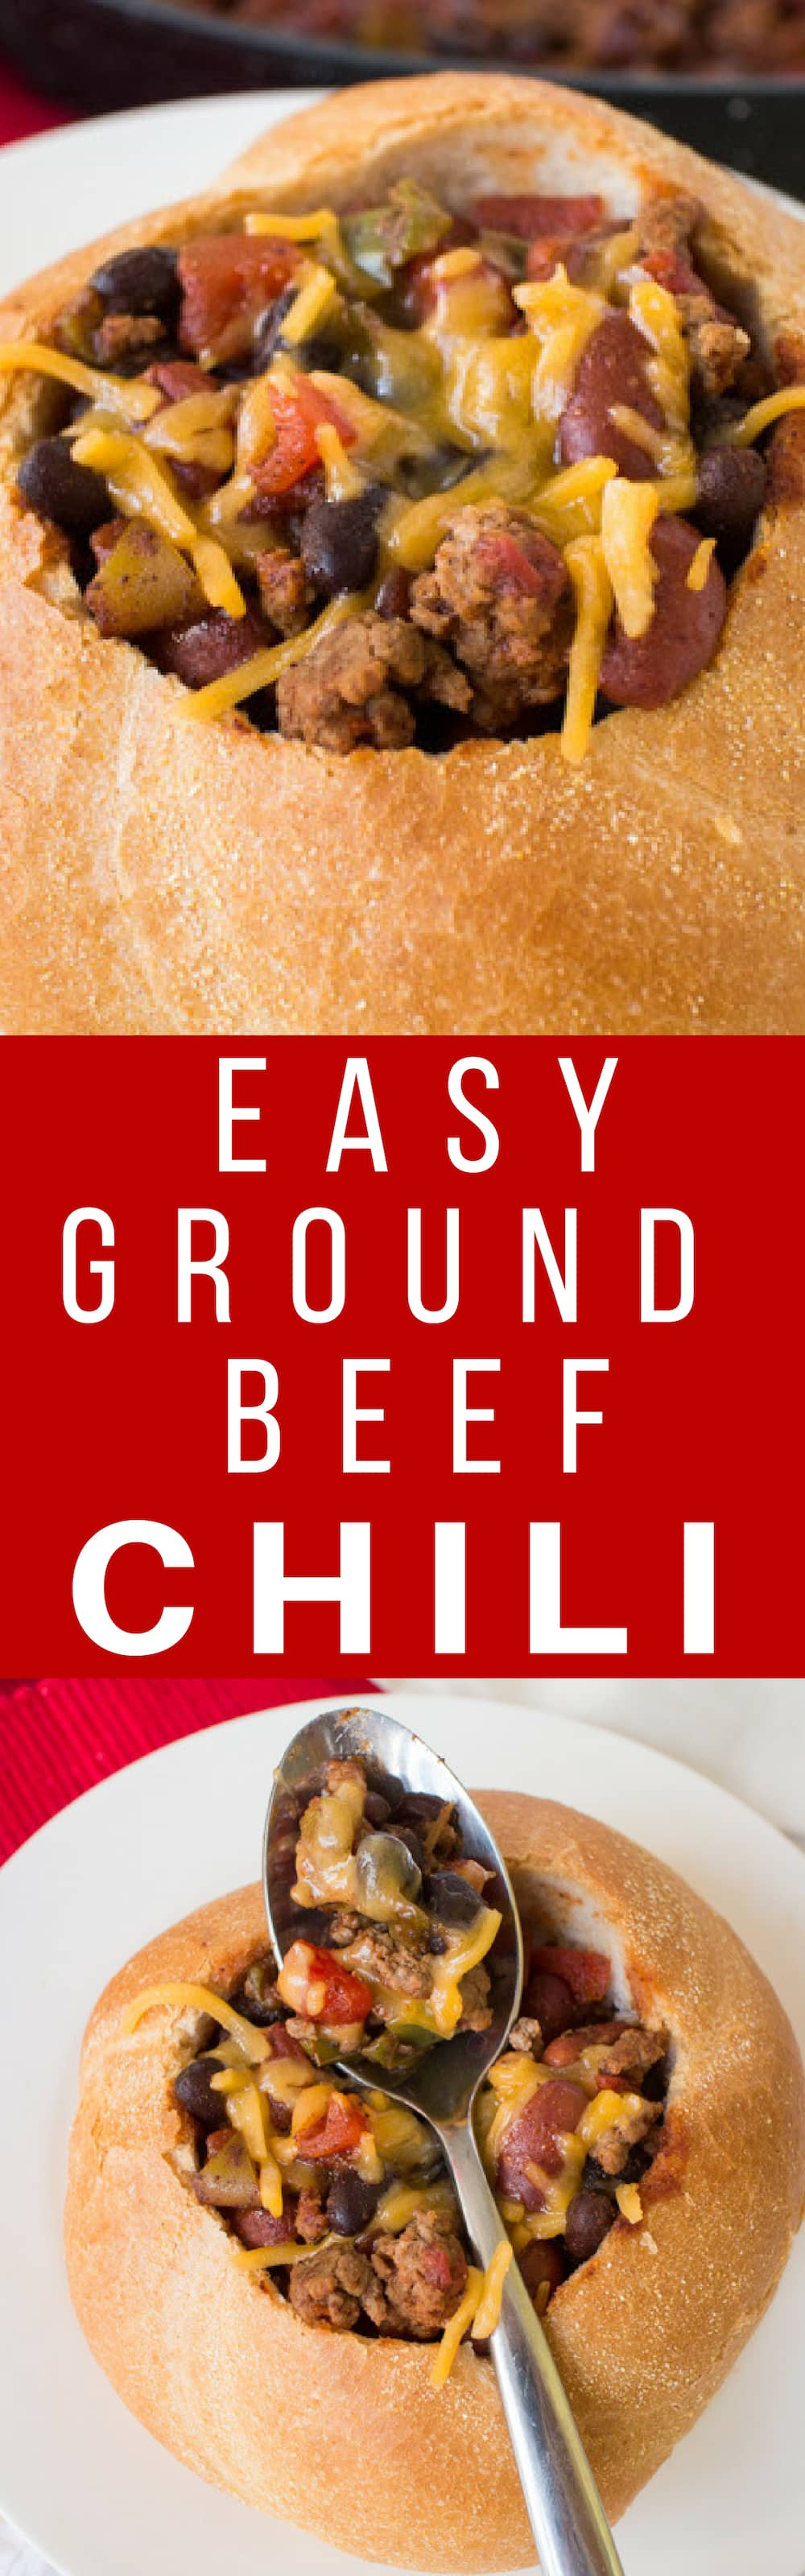 Easy Ground Beef Chili Recipe served inside bread bowls!  This quick dinner is ready in 20 minutes and your family will love it!